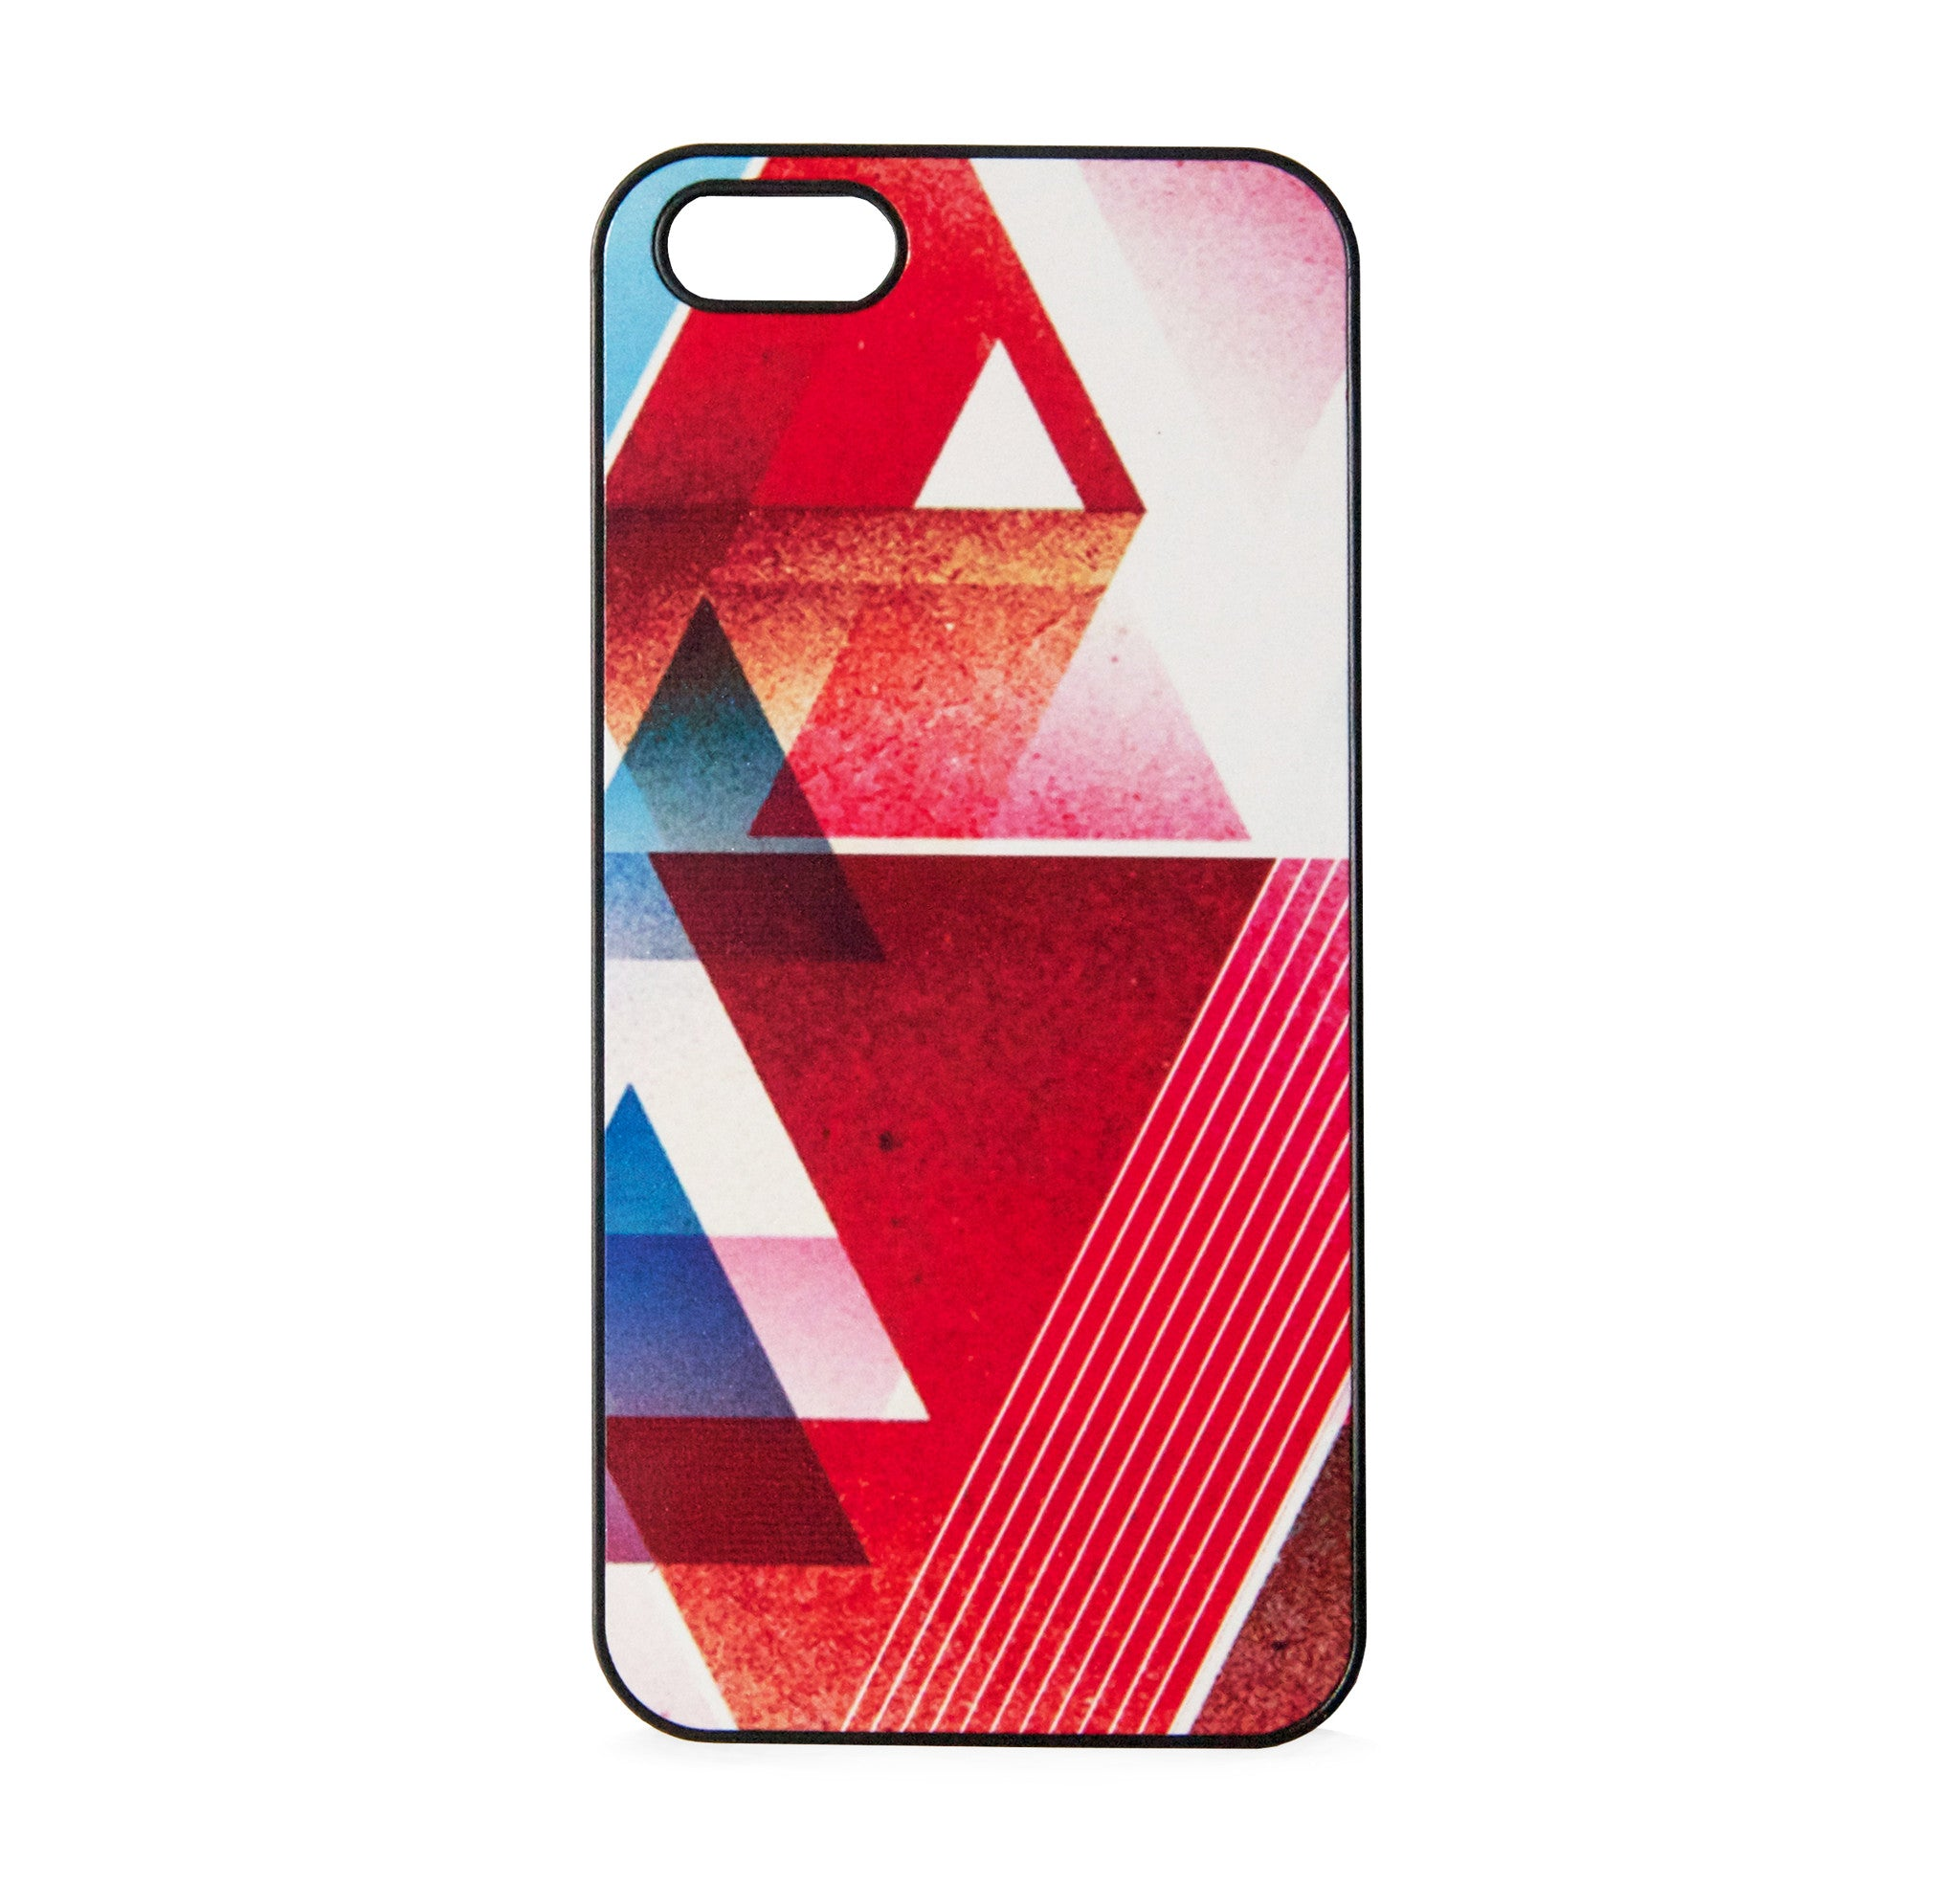 GEO ABSTRACT TRIANGLE FOR IPHONE 5/5S